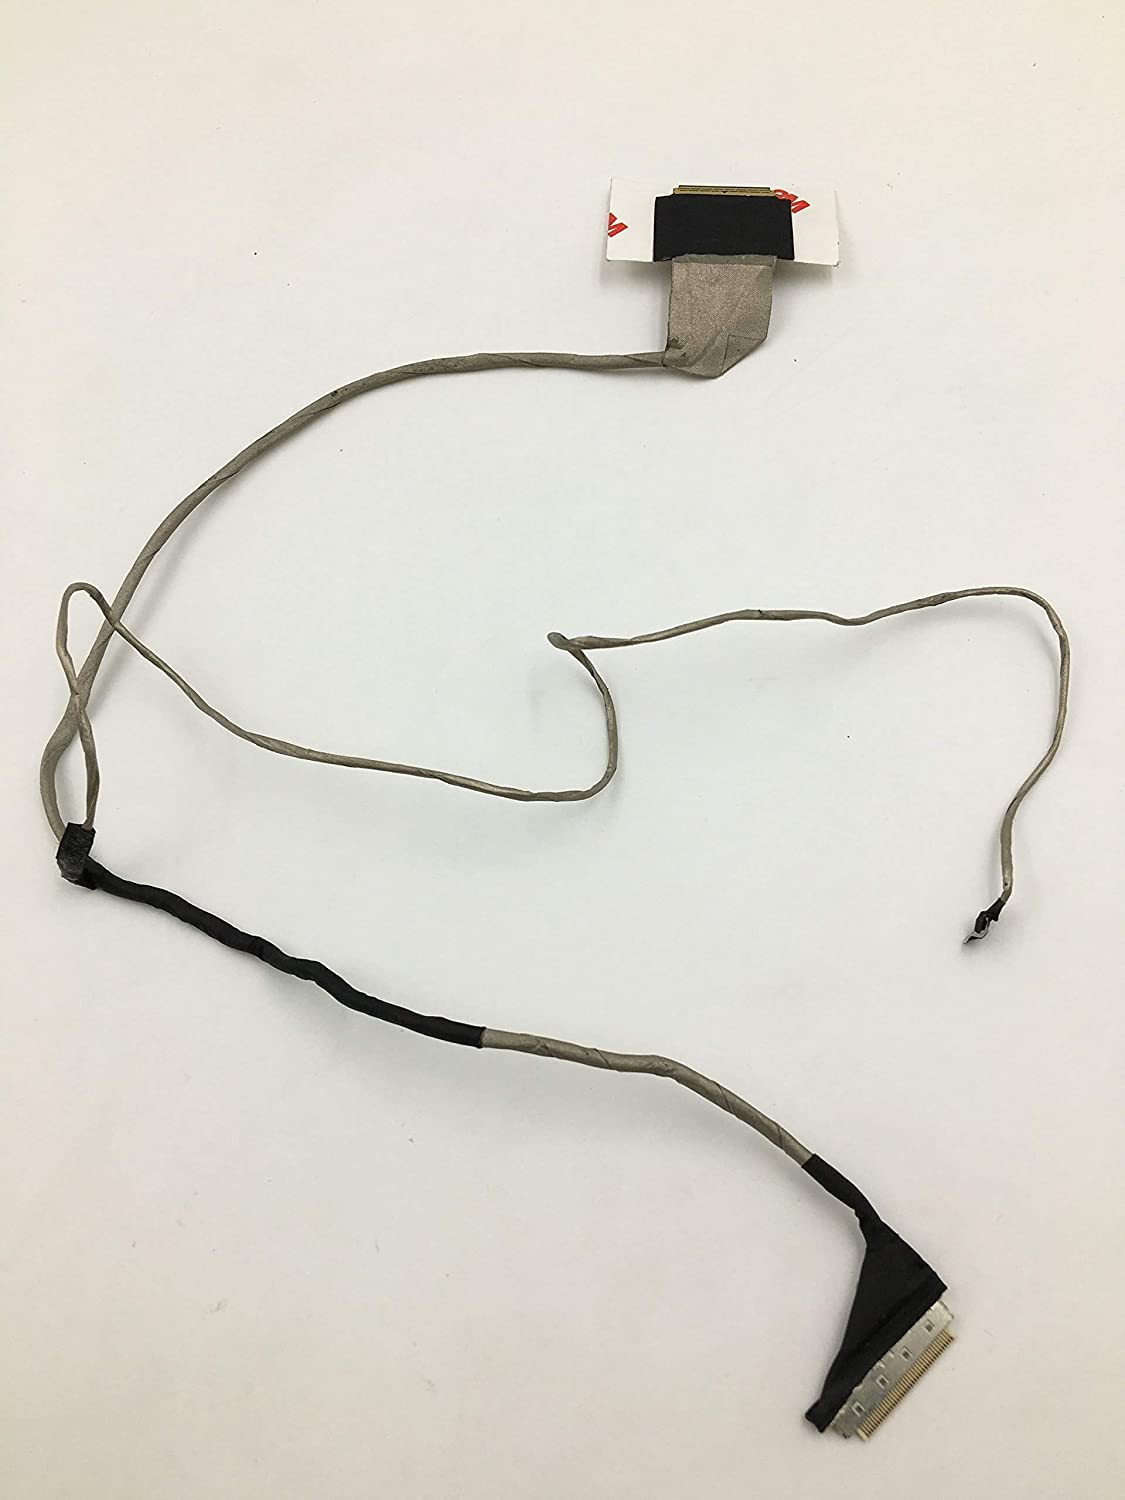 wangpeng LCD Screen Video Cable for Acer Aspire ES1-511 ES1-511G Gateway NE511 Packard Bell EasyNote TF71BM Display Lvds Cable DC020020Z10 50.MMLN2.007 (LVDS)